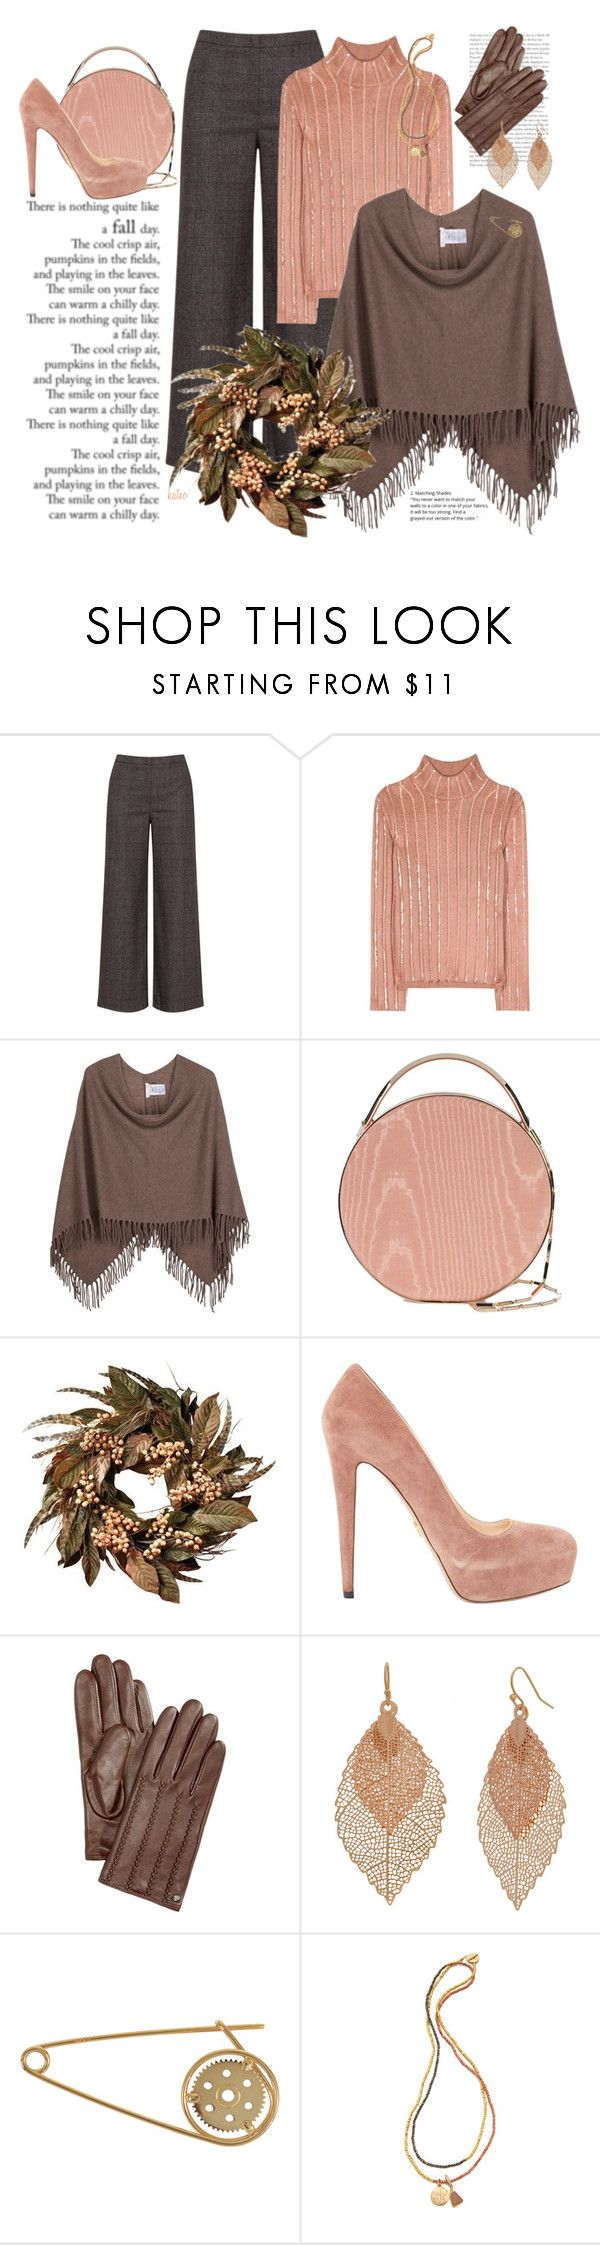 """Perfect Autumn Poncho"" by kateo ❤ liked on Polyvore featuring navabi, Nina Ricci, Minnie Rose, Eddie Borgo, Nearly Natural, Prada, Lauren Ralph Lauren, Bold Elements, Loewe and Lindsay Vallan"